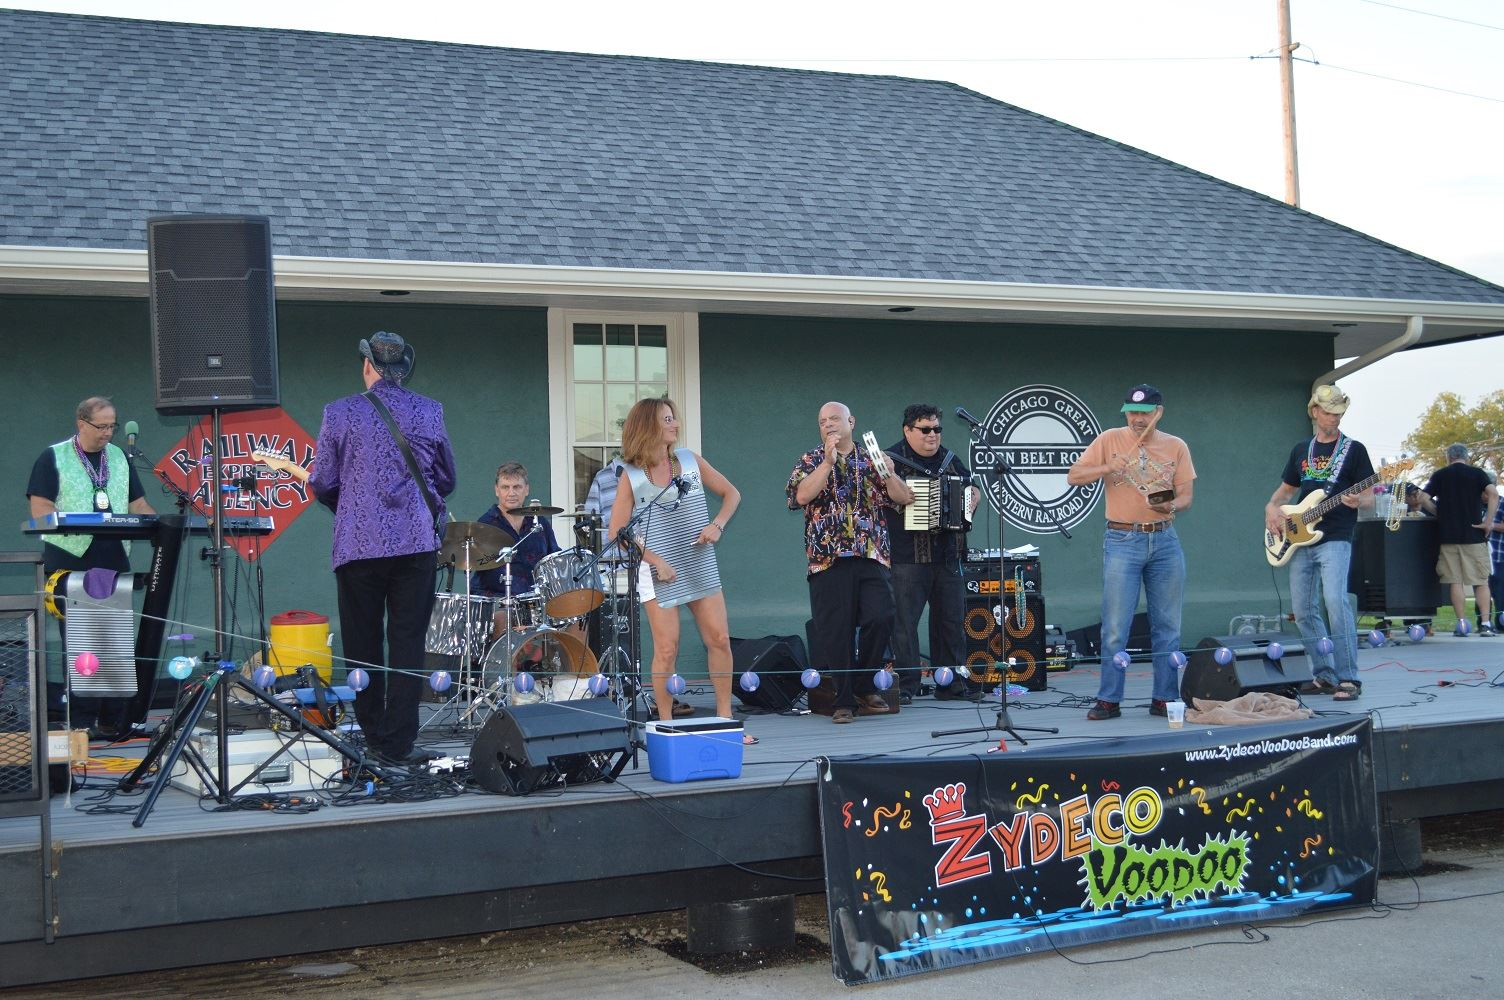 Zydeco Voodoo invited audience members on stage to play the rubboard and cowbell during a concert at Cortesi Veterans Memorial Park Aug. 25, 2016.